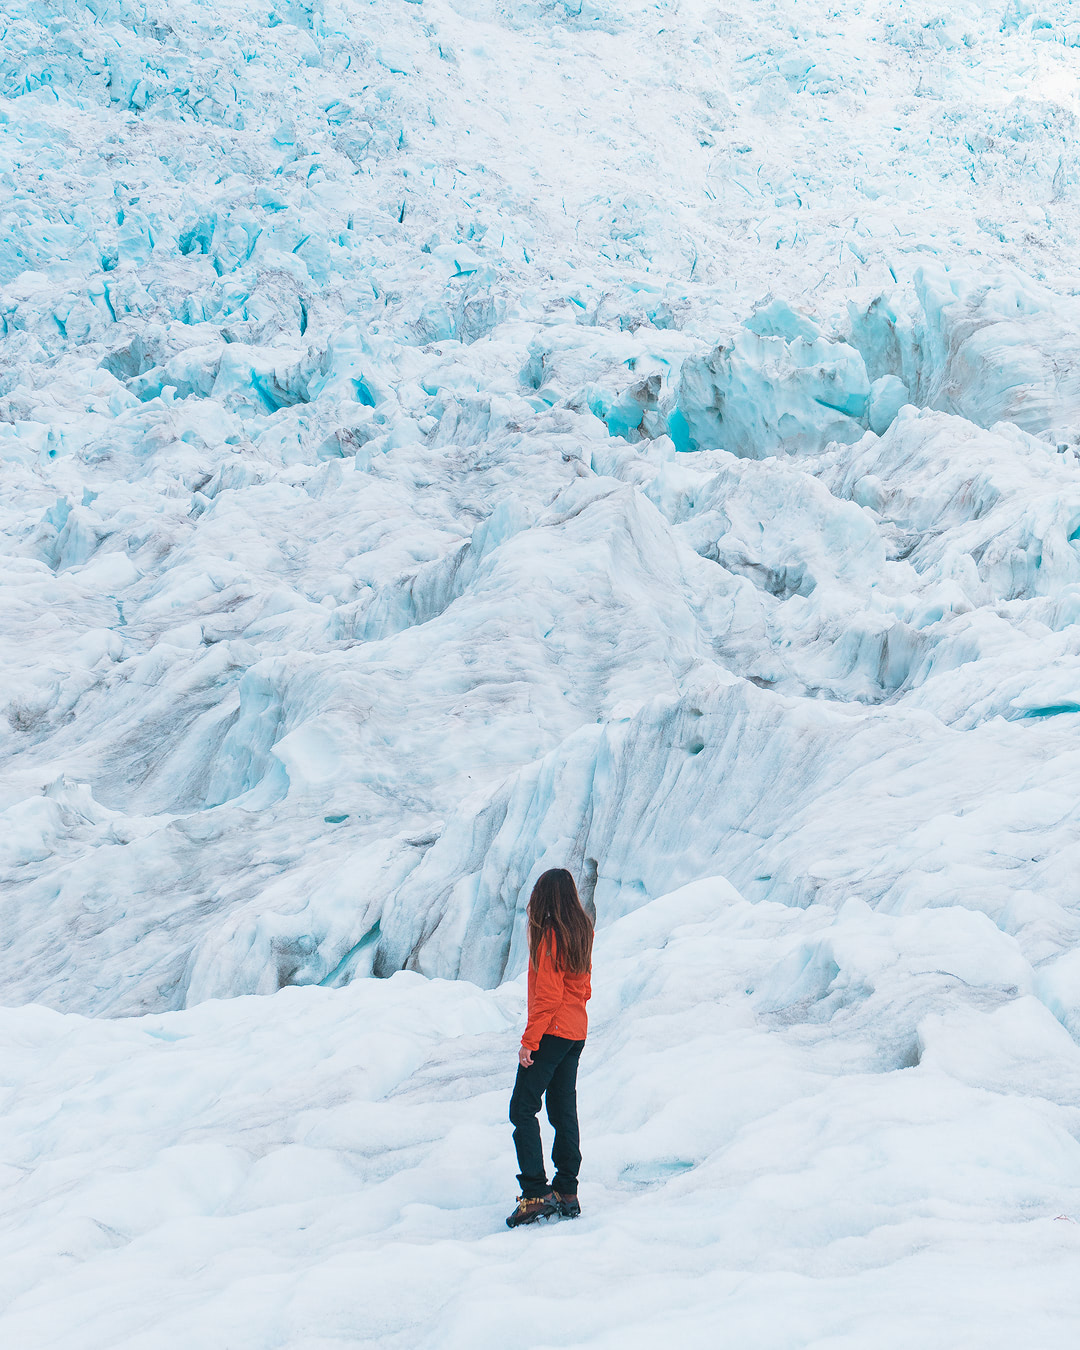 12 MUST SEE PLACES ON THE SOUTH ISLAND OF NEW ZEALAND - FRANZ JOSEF